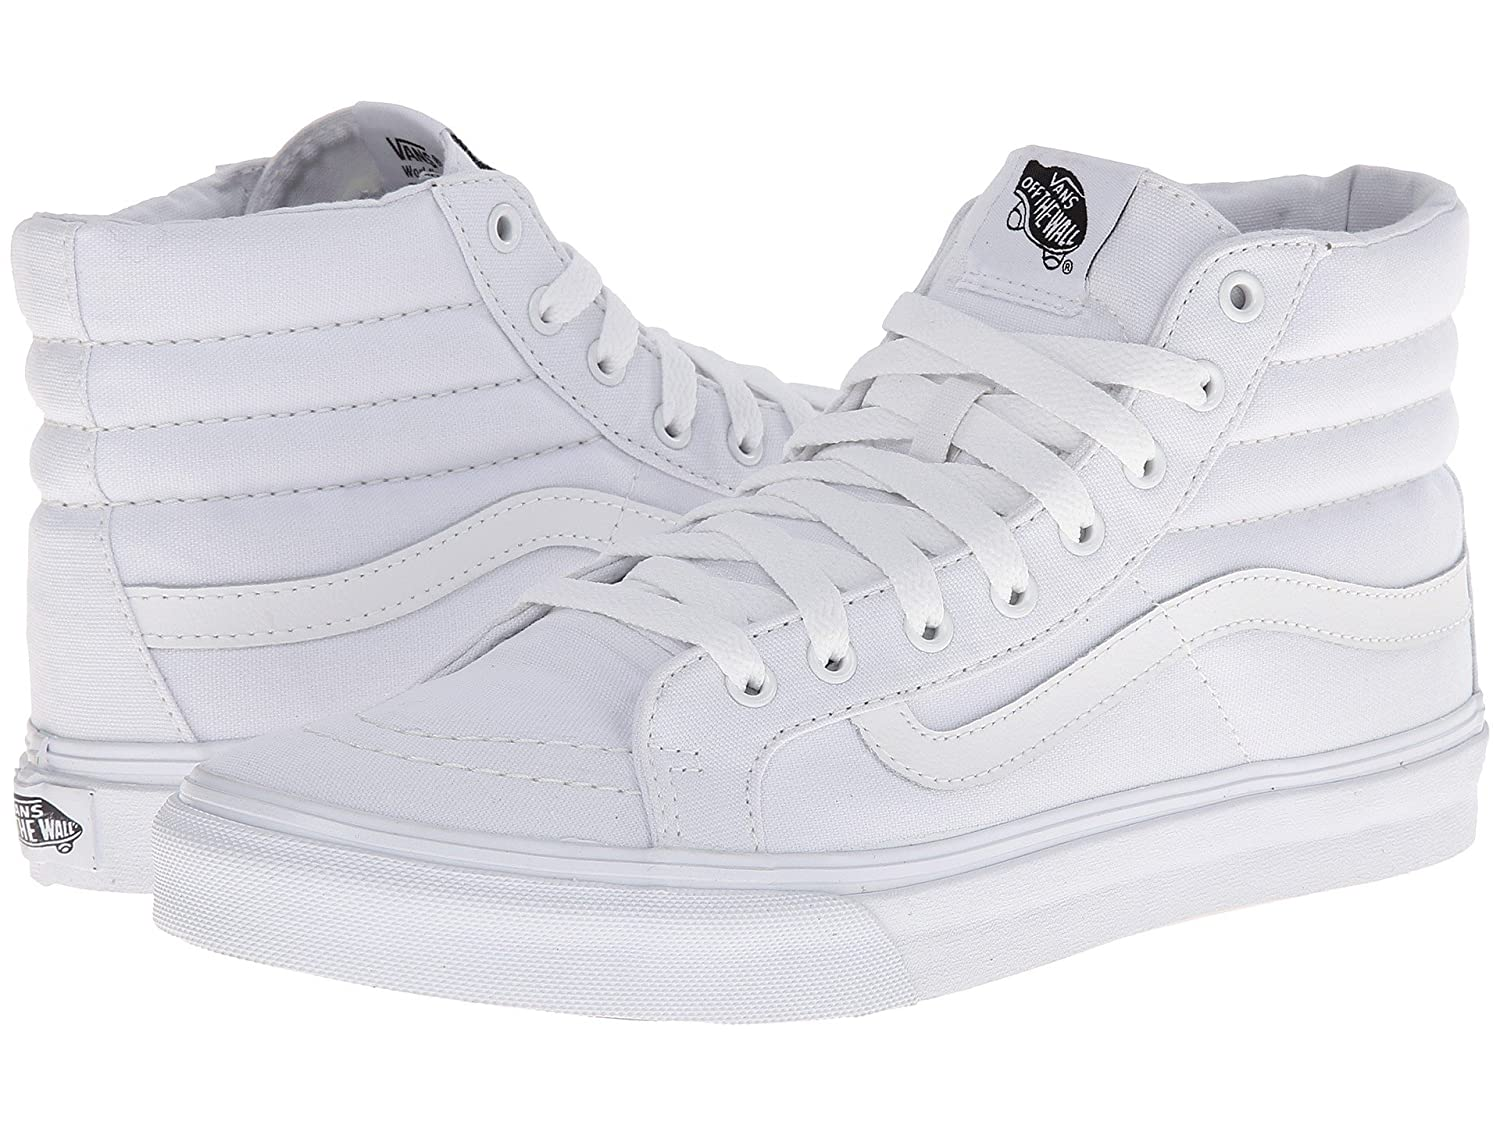 Vans Men's Sk8-Hi(Tm) Core Classics B07DN372KP 41 M EU / 10 B(M) US Women / 8.5 D(M) US Men|Slim (True White)